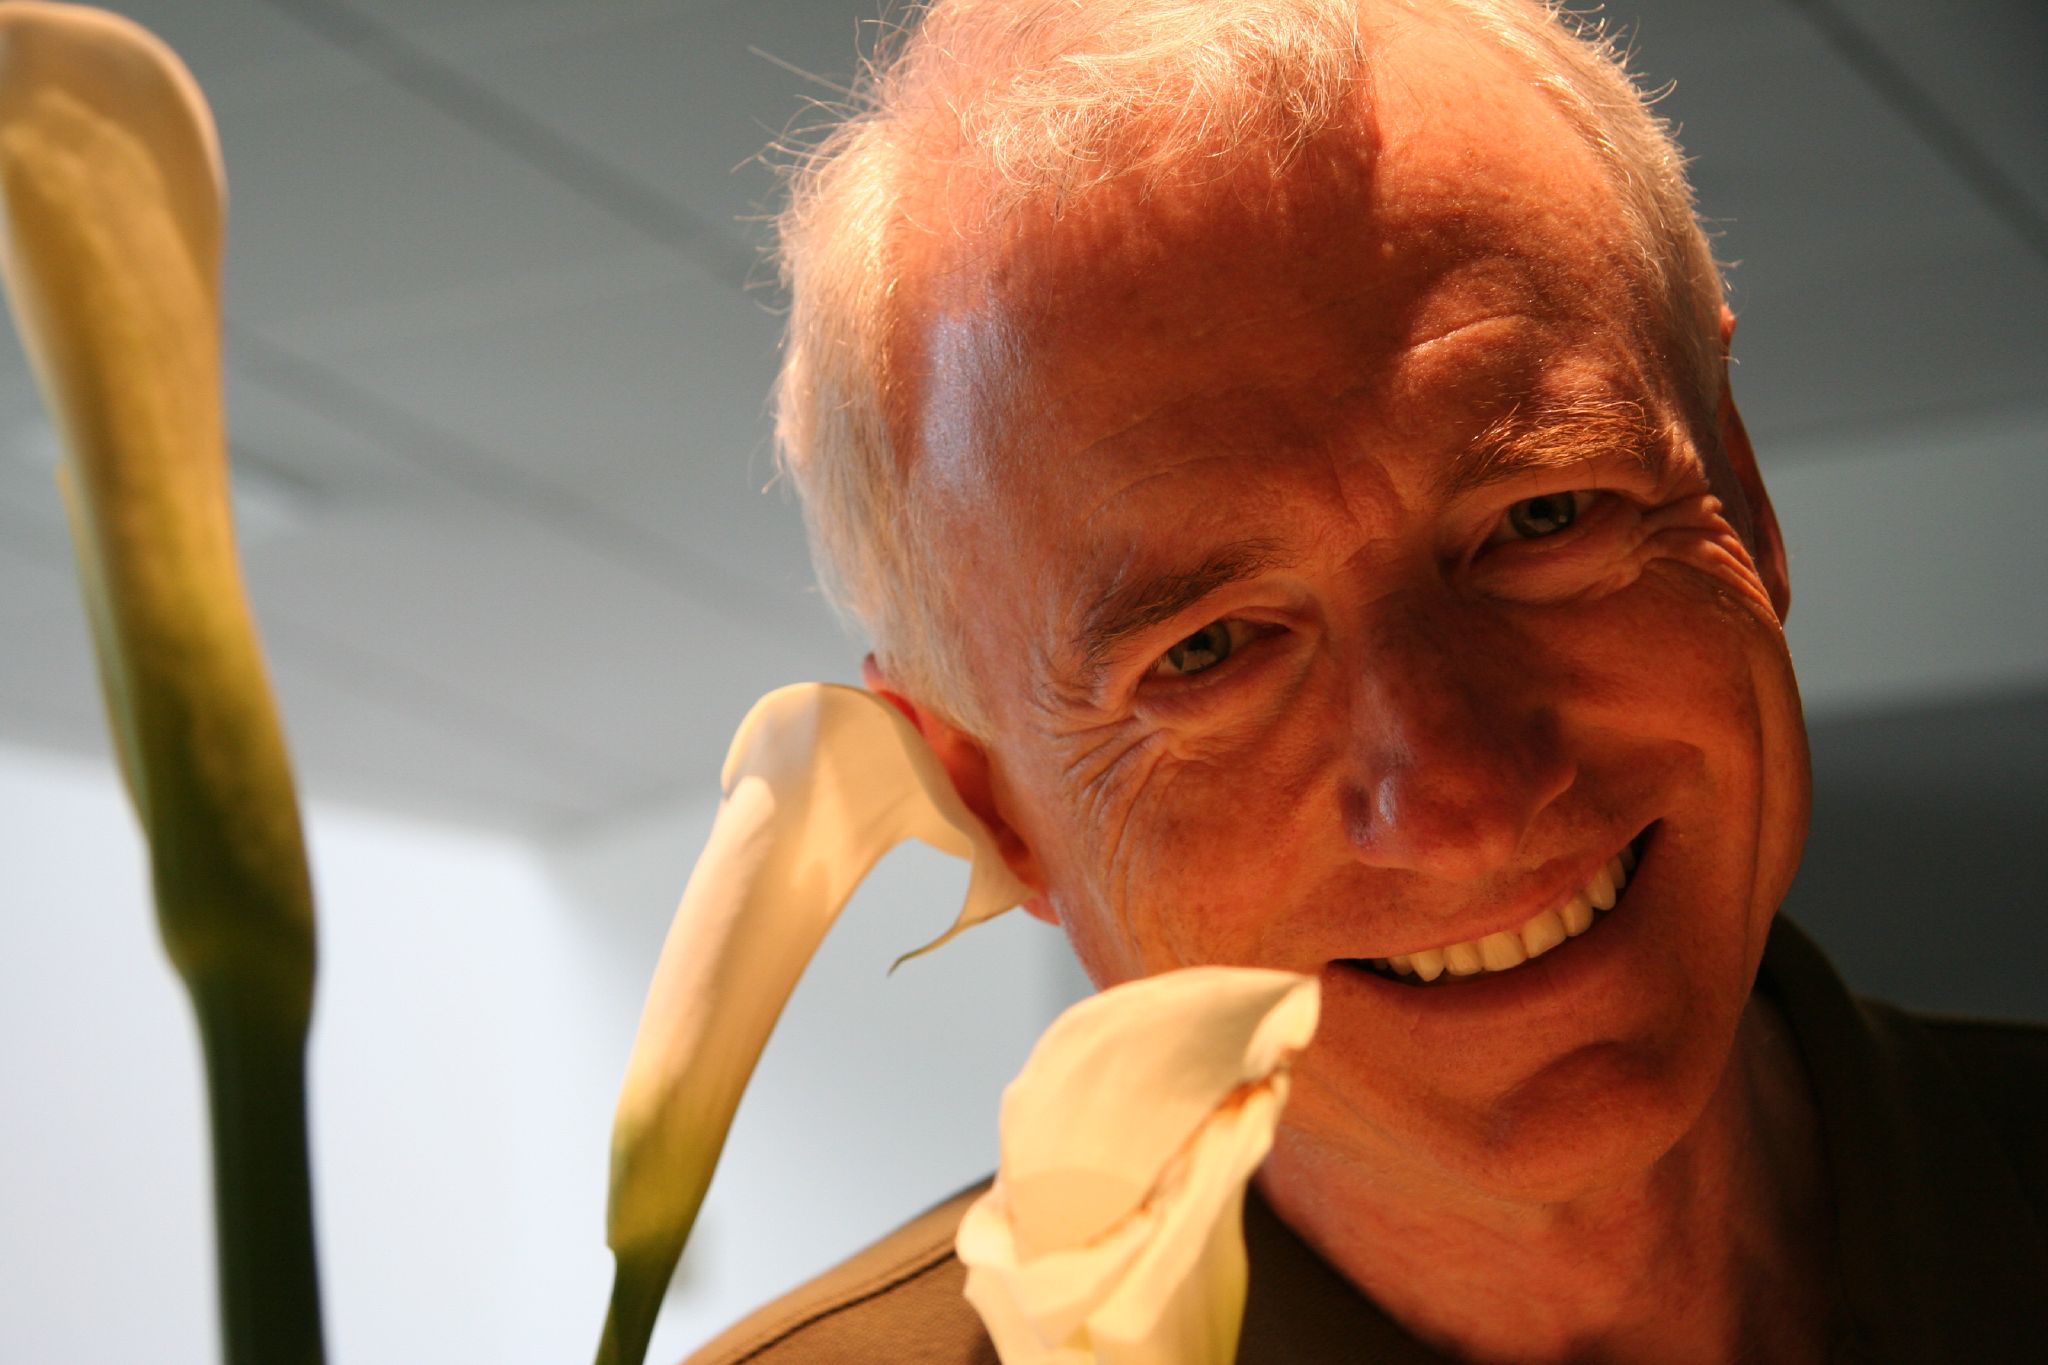 http://upload.wikimedia.org/wikipedia/commons/c/c3/Larry_Tesler_Smiles_at_Whisper.jpeg